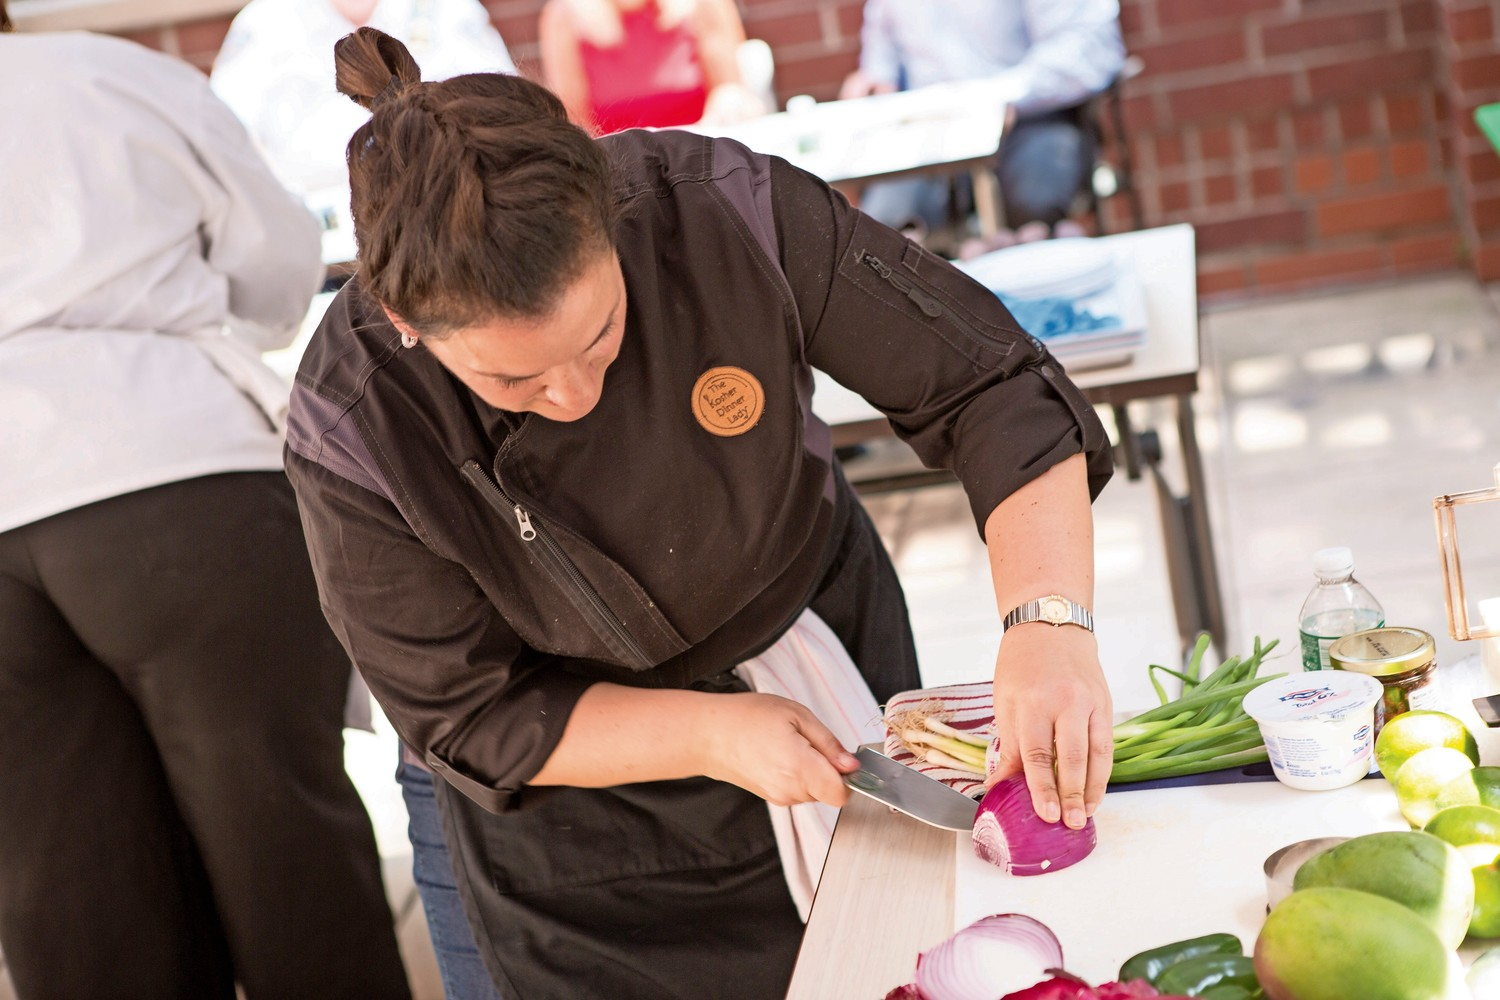 Food blogger Rachel Berger slices onions for her dish at Atria Riverdale's Chef Showdown last year. The cooking competition returns to Atria for its third installment on July 17.